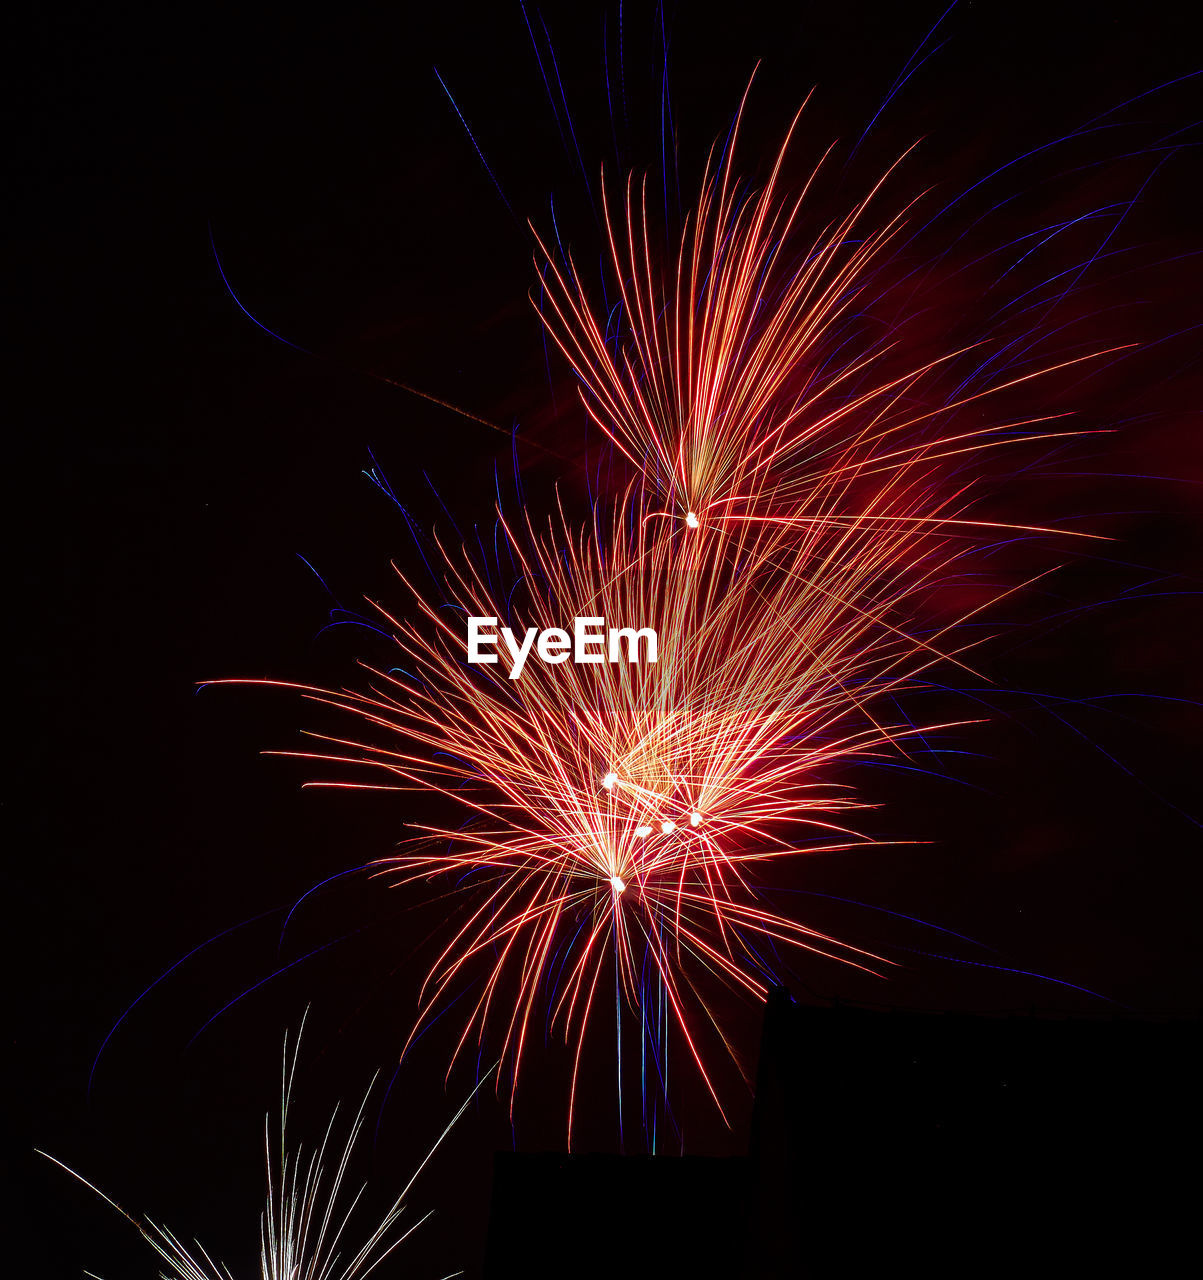 night, firework display, celebration, firework - man made object, illuminated, exploding, no people, long exposure, arts culture and entertainment, multi colored, black background, outdoors, close-up, sky